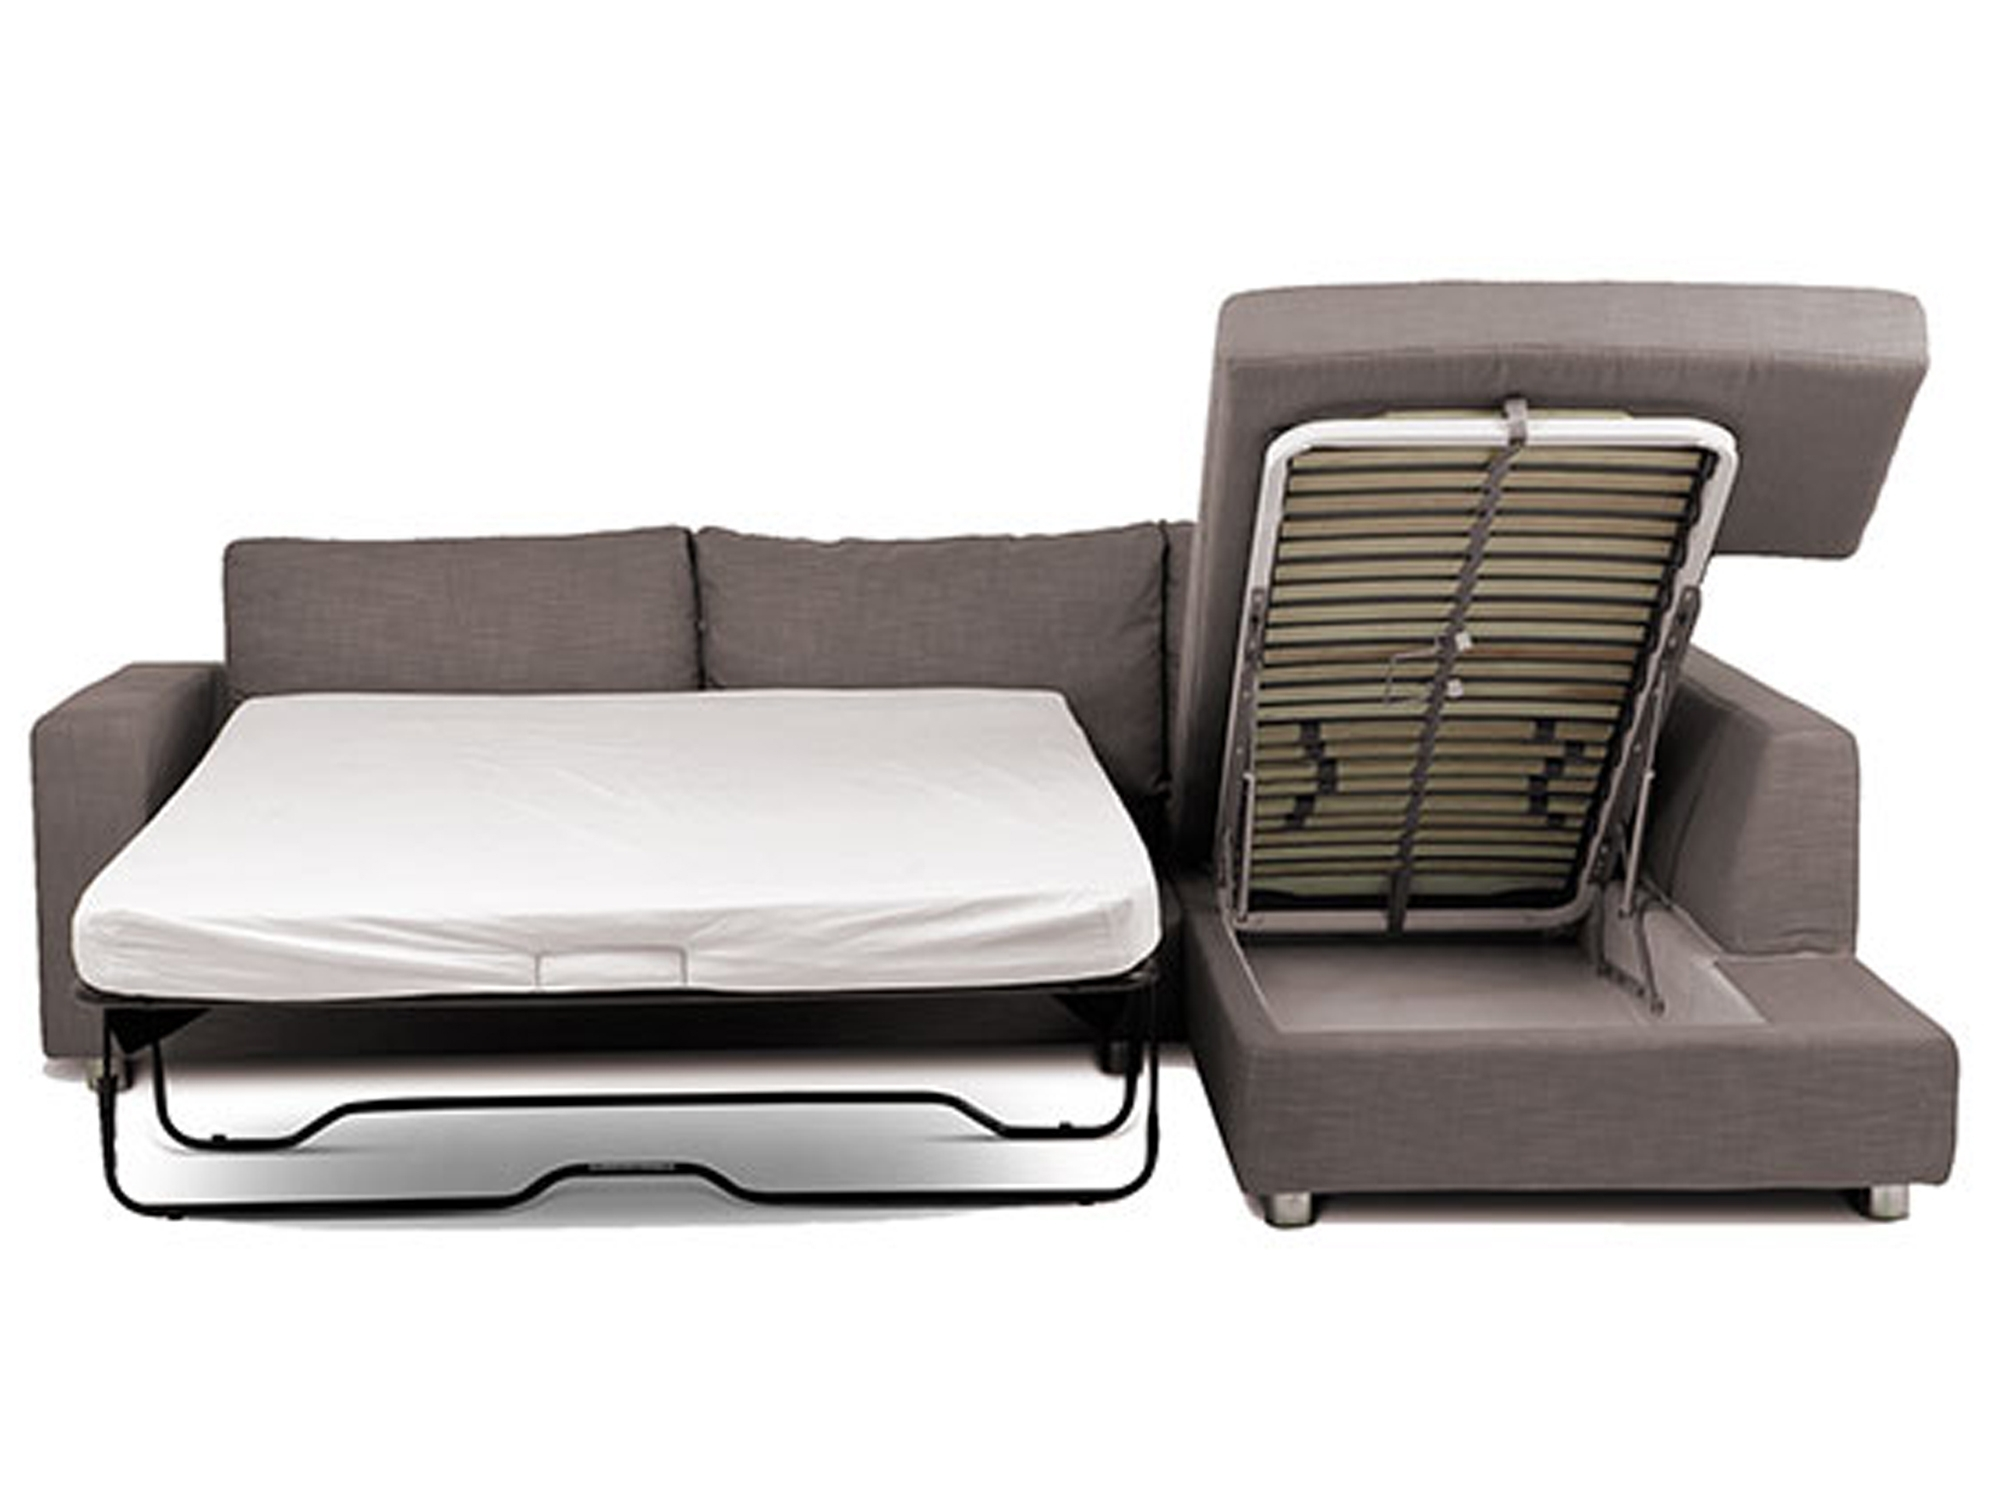 Famous Chaise Sofa Beds With Storage Within Sofas: Classic Meets Contemporary Chaise Sofa Bed For Ideal Living (View 10 of 15)